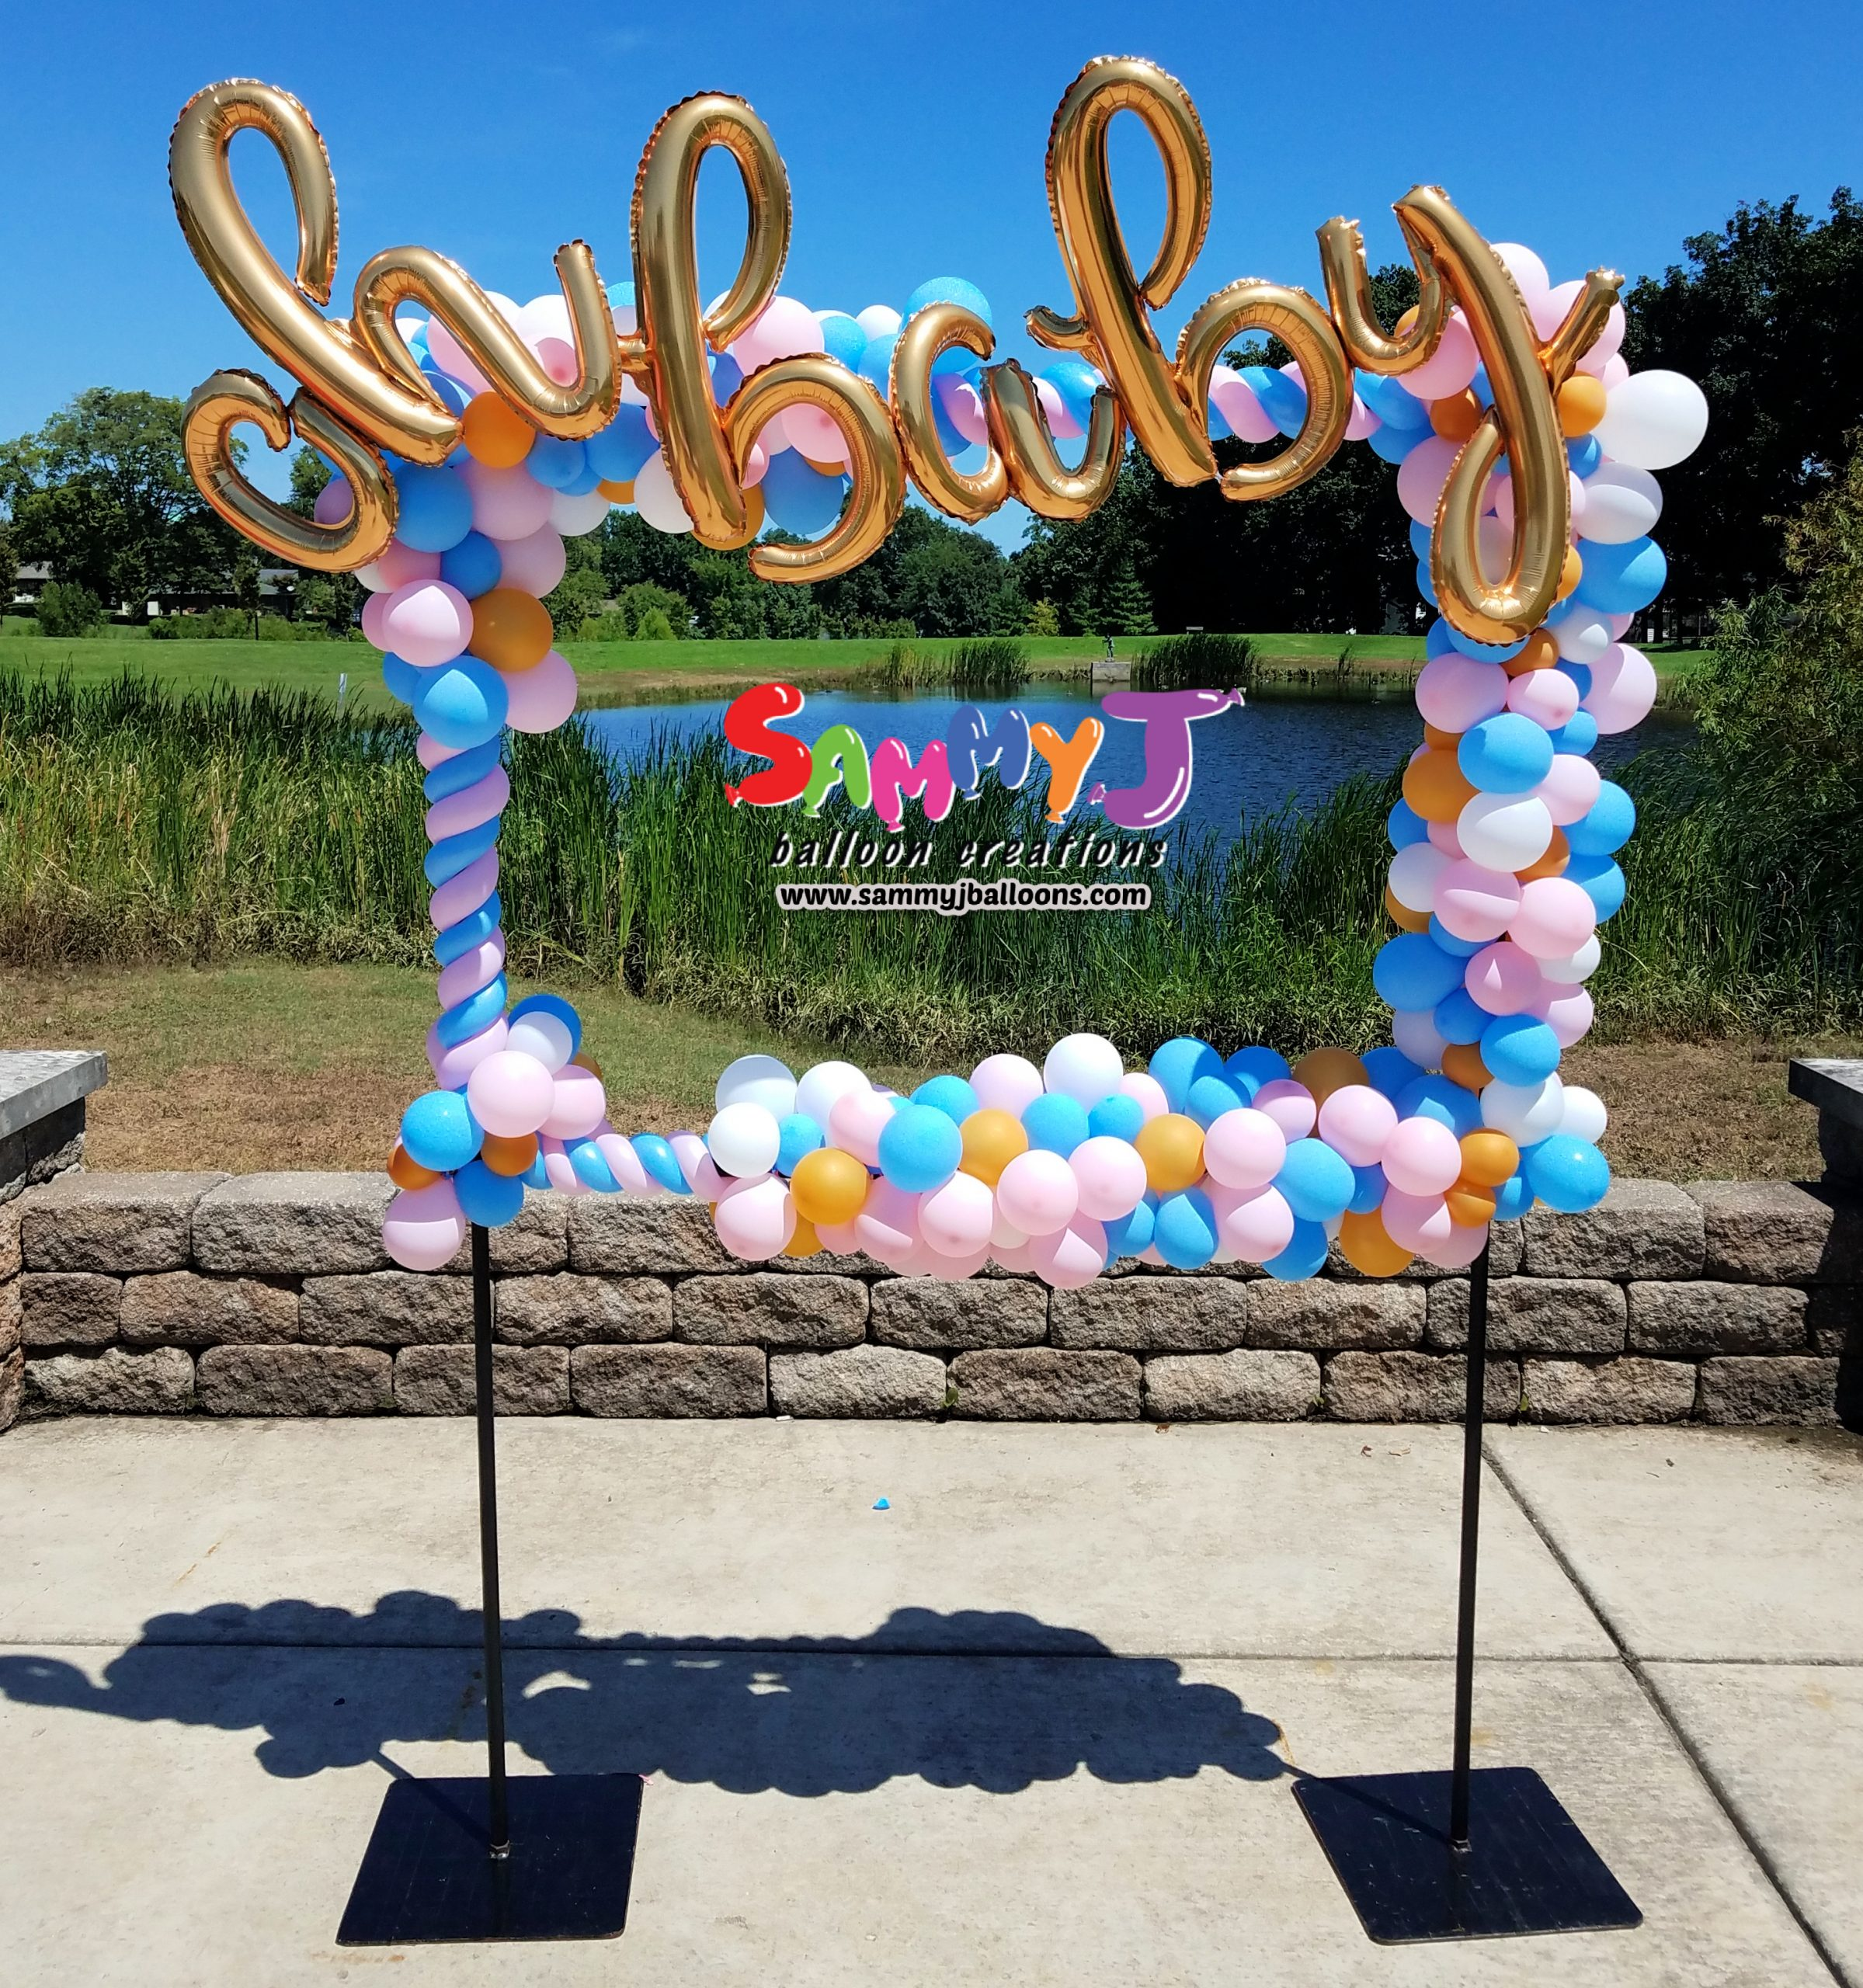 SAMMY J Balloon Creations st louis balloons baby picture frame